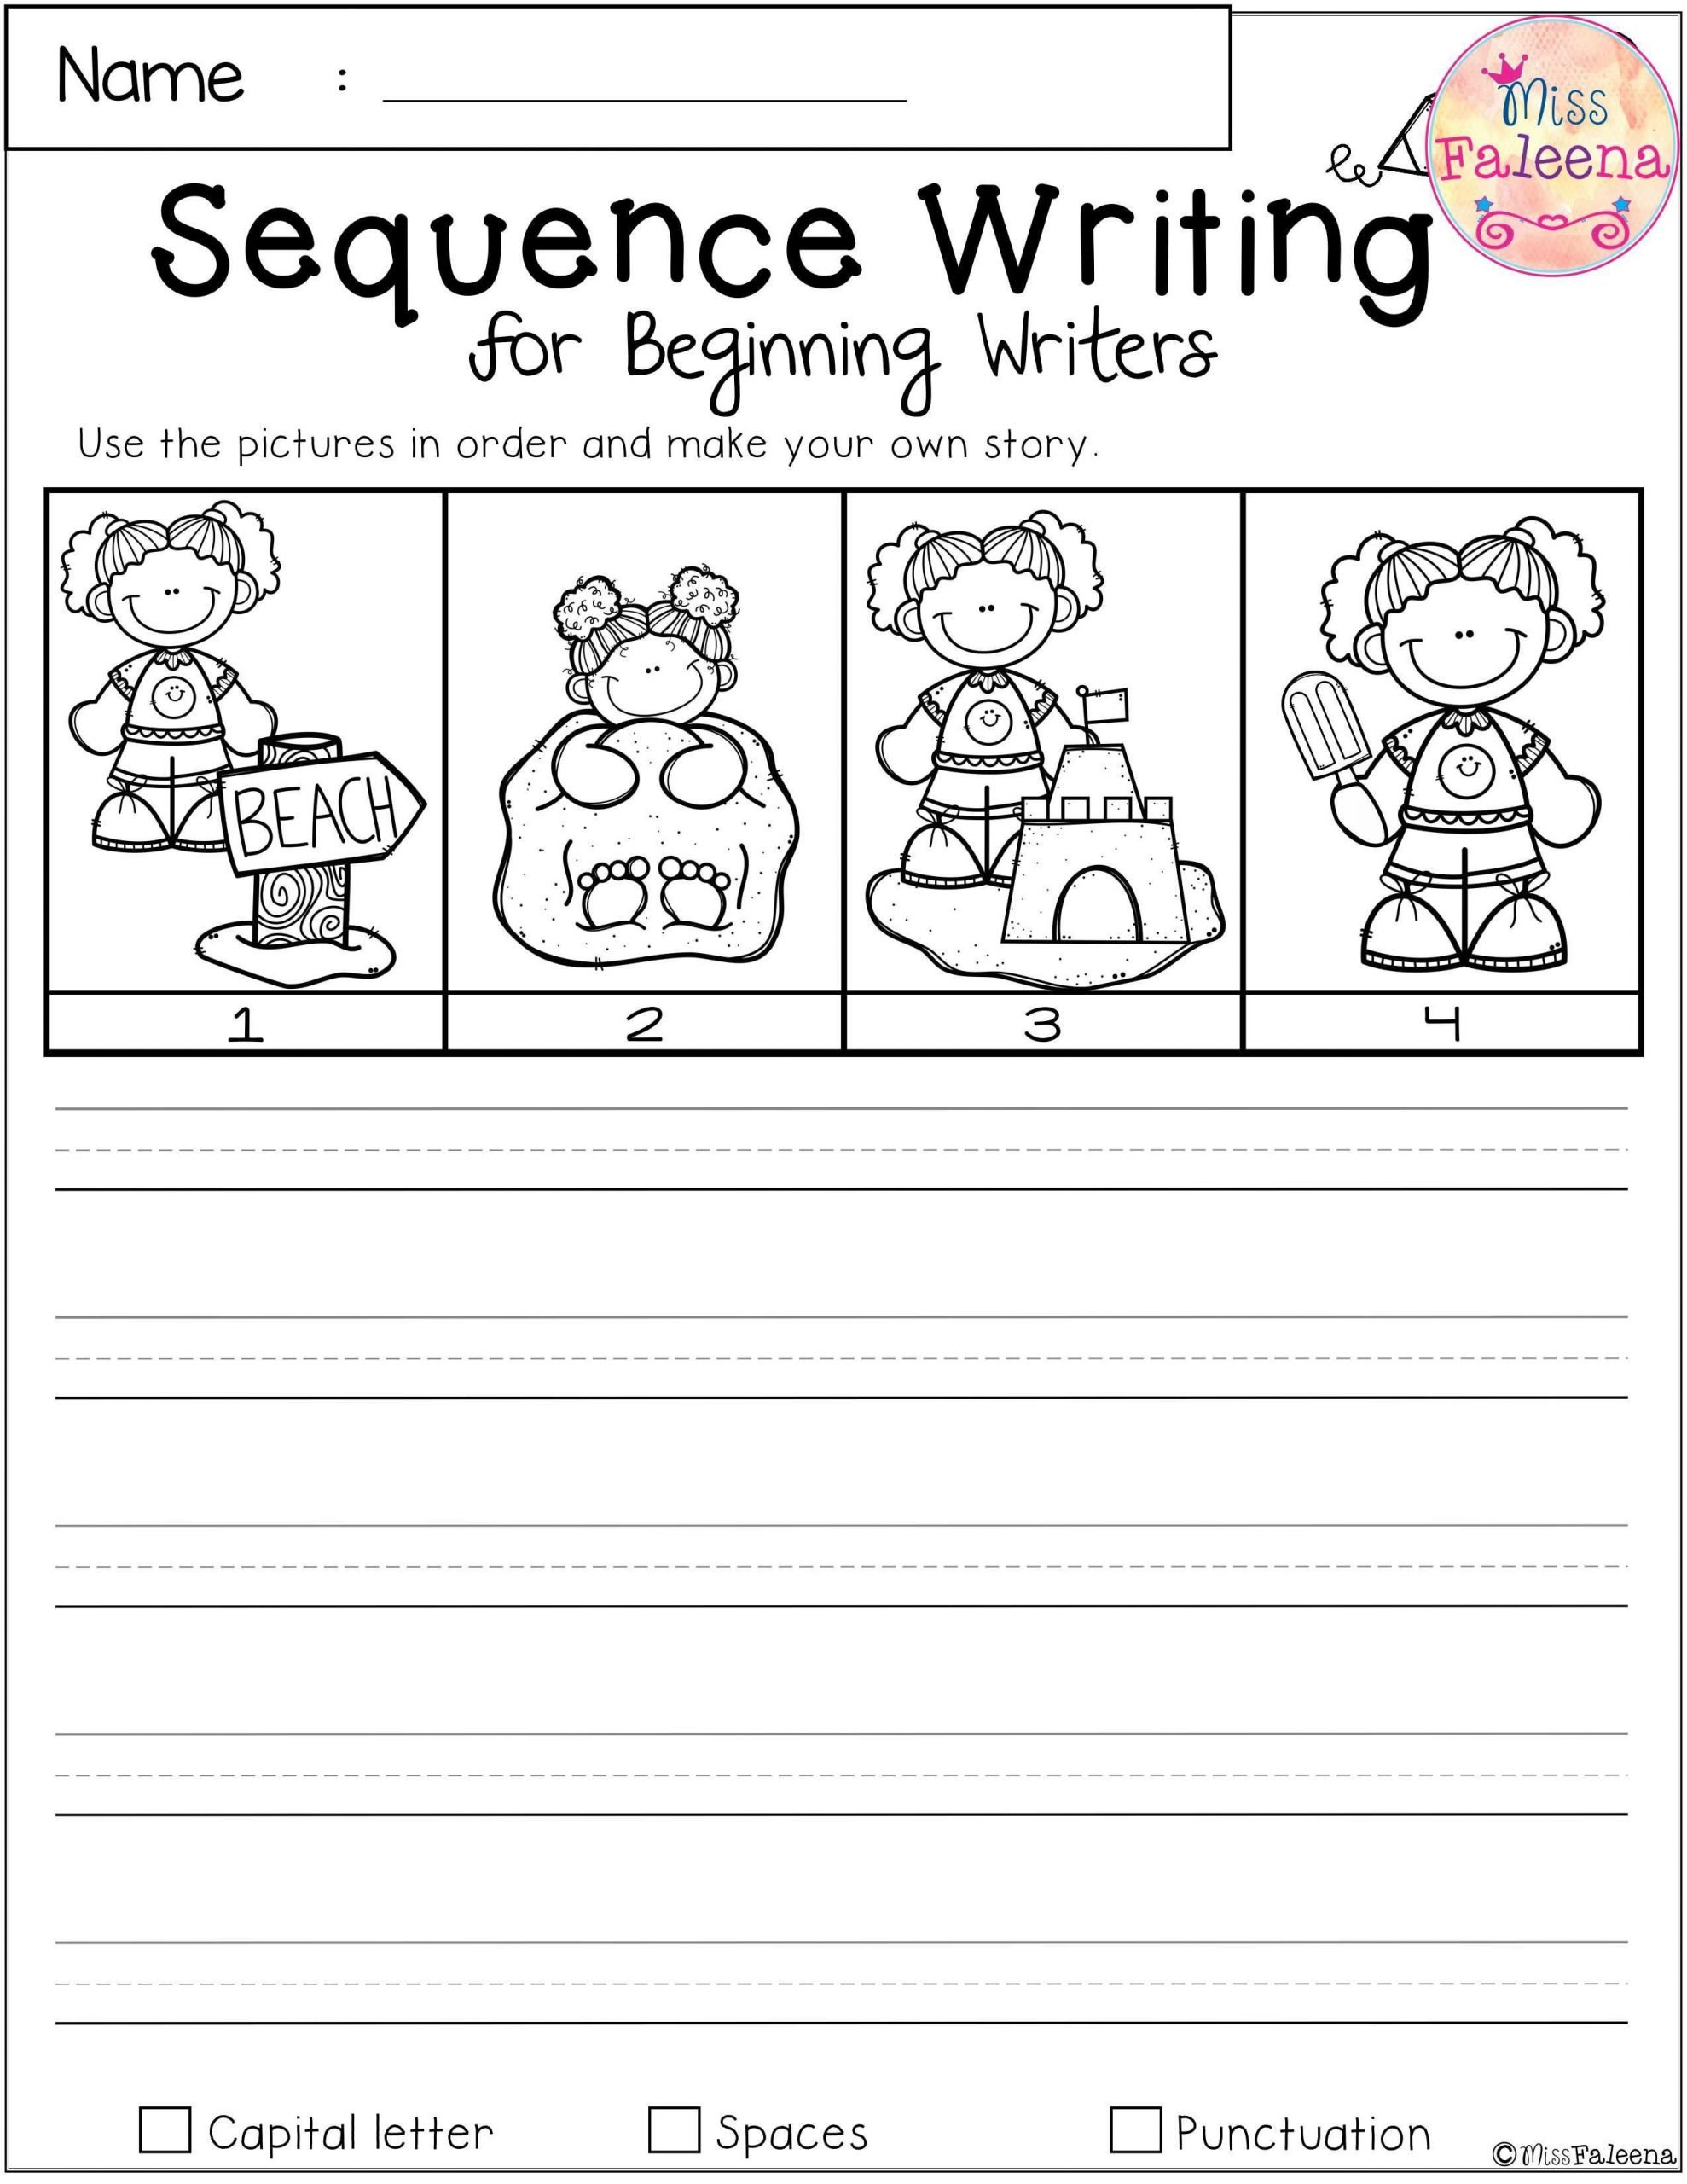 Sequence Story Worksheets Free Sequence Writing for Beginning Writers